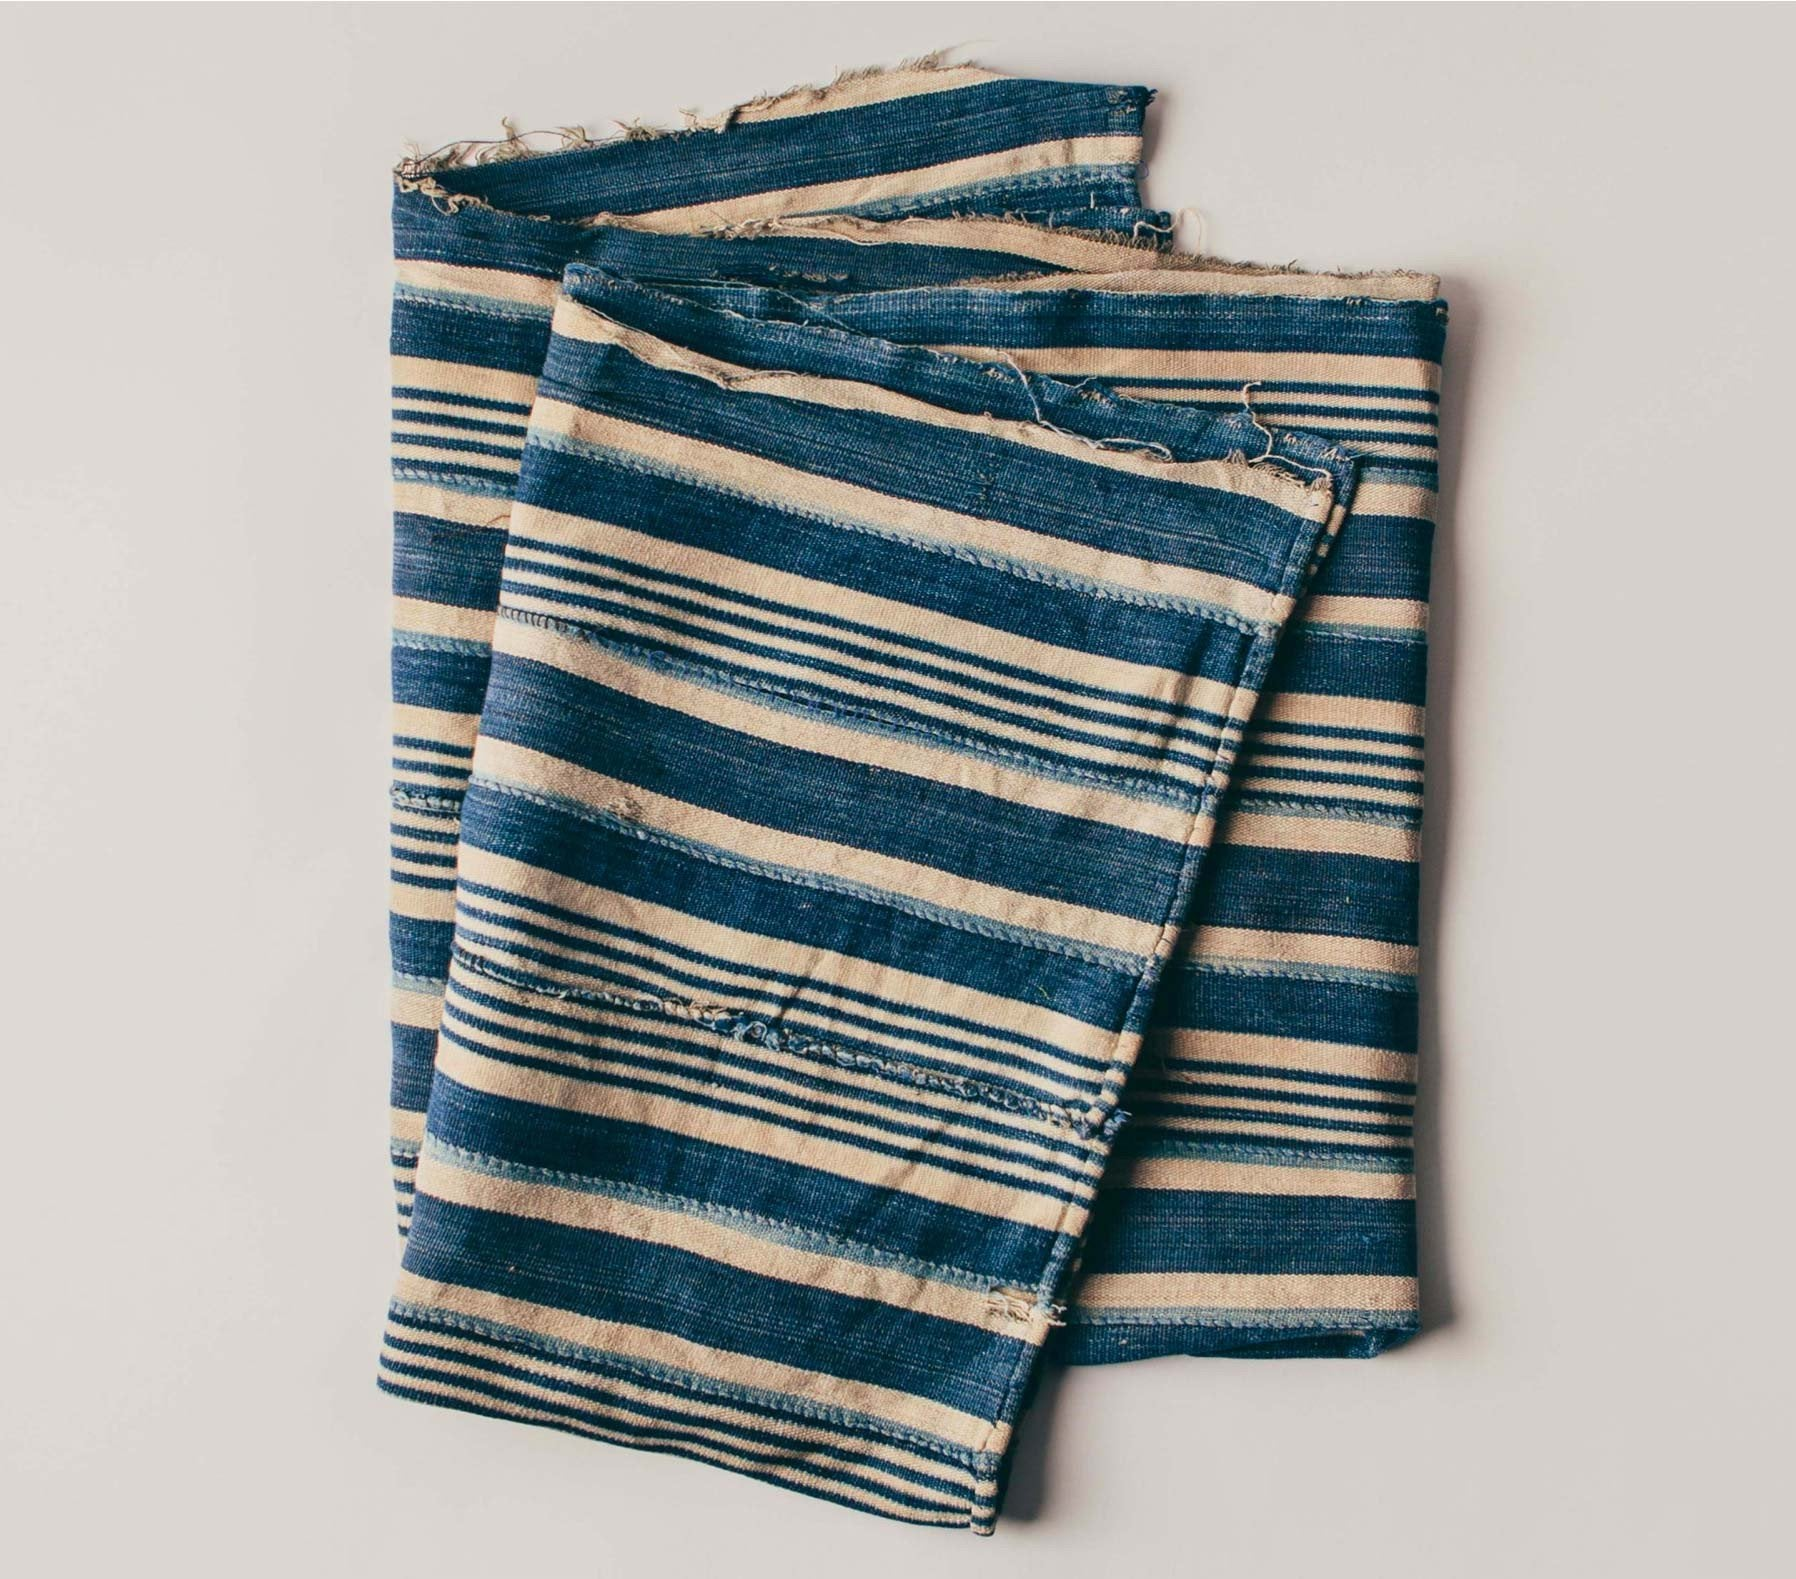 imogene + willie - vintage striped african indigo textile